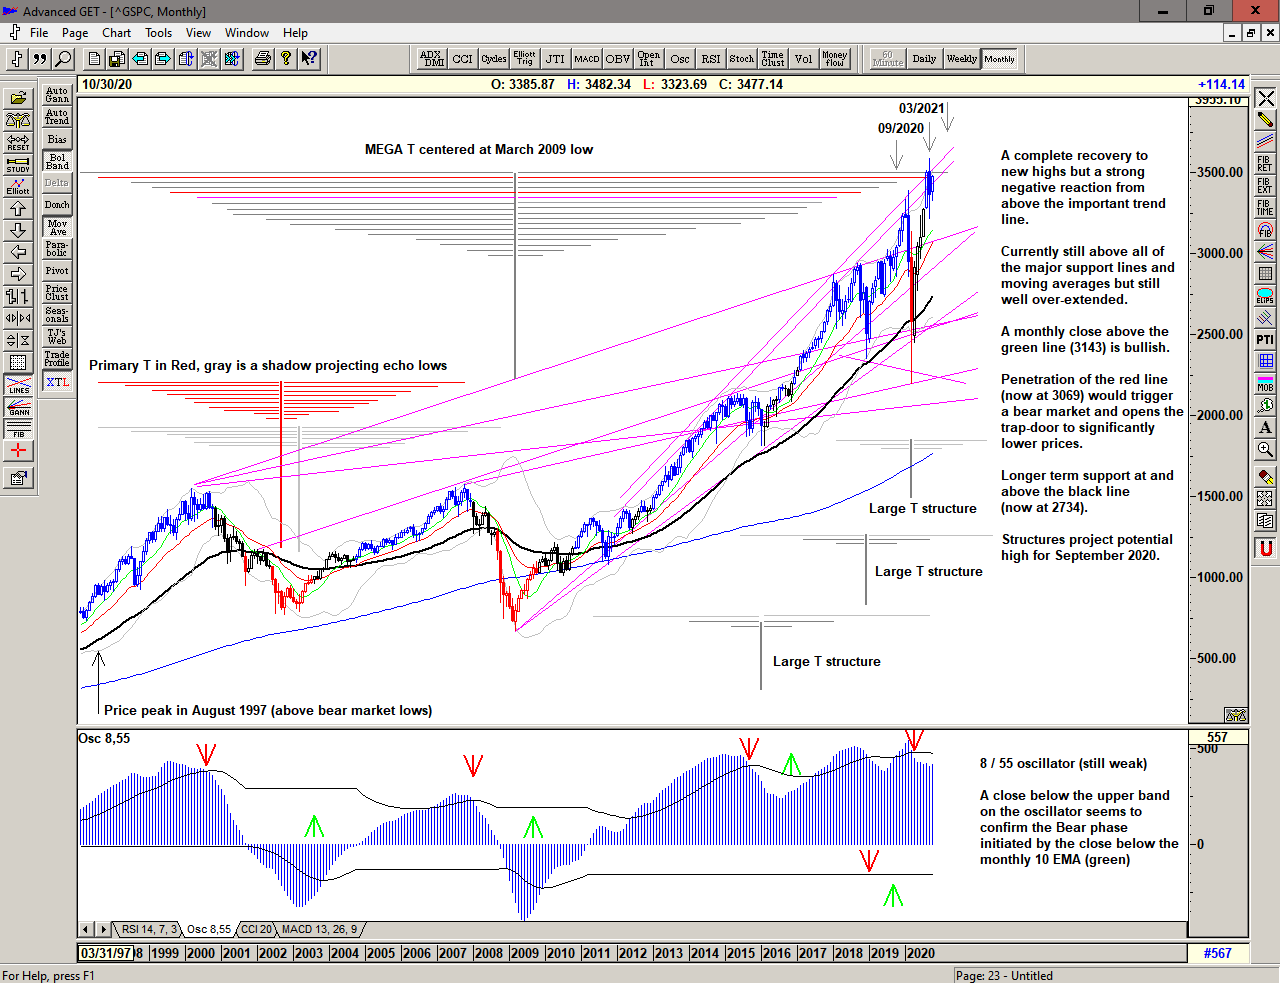 Monthly chart of S&P 500 fo 12 October 2020